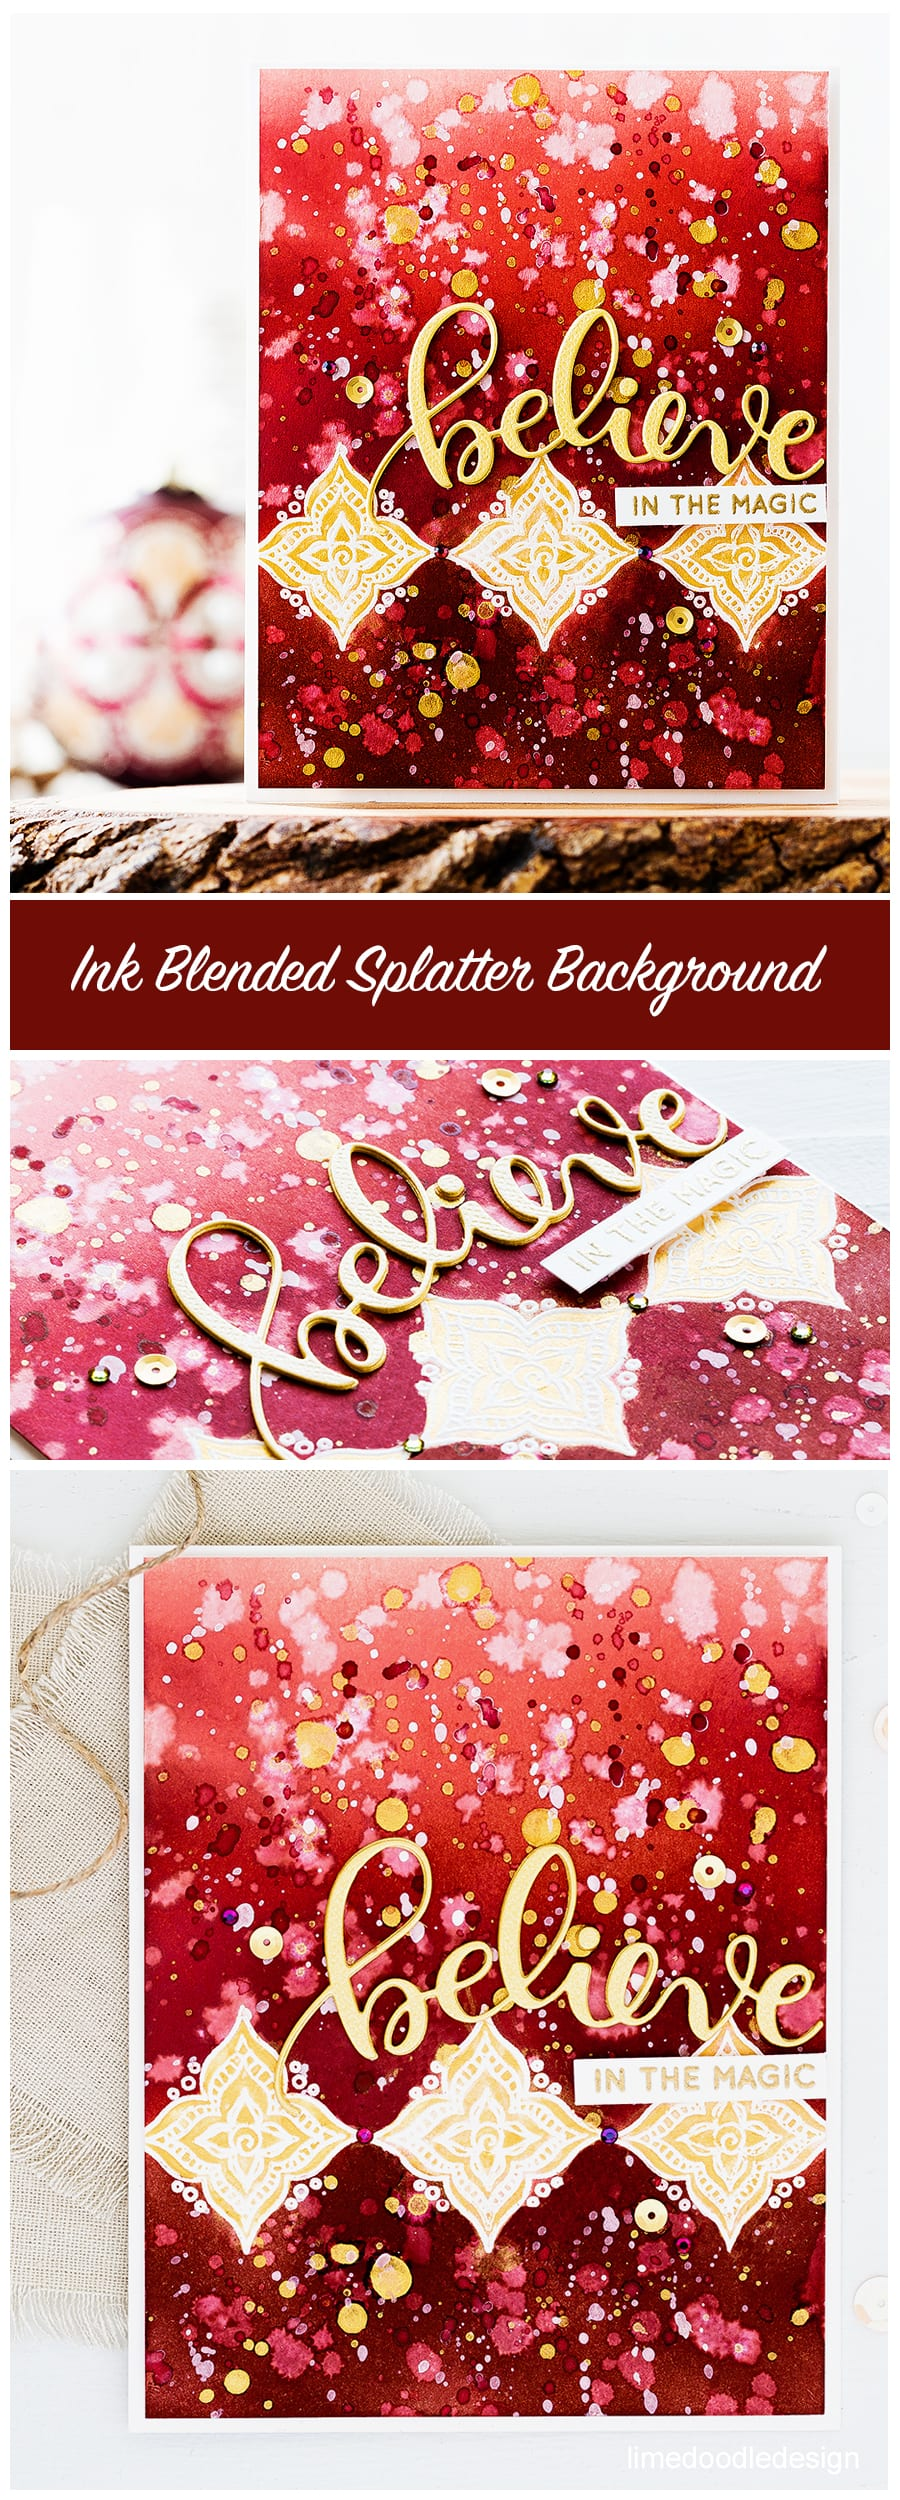 Believe in the magic - video step by step of creating this deep burgundy and gold splattered background inspired by Christmas ornaments. Find out more about this Christmas card by clicking on the following link: https://limedoodledesign.com/2016/11/video-believe-in-the-magic/